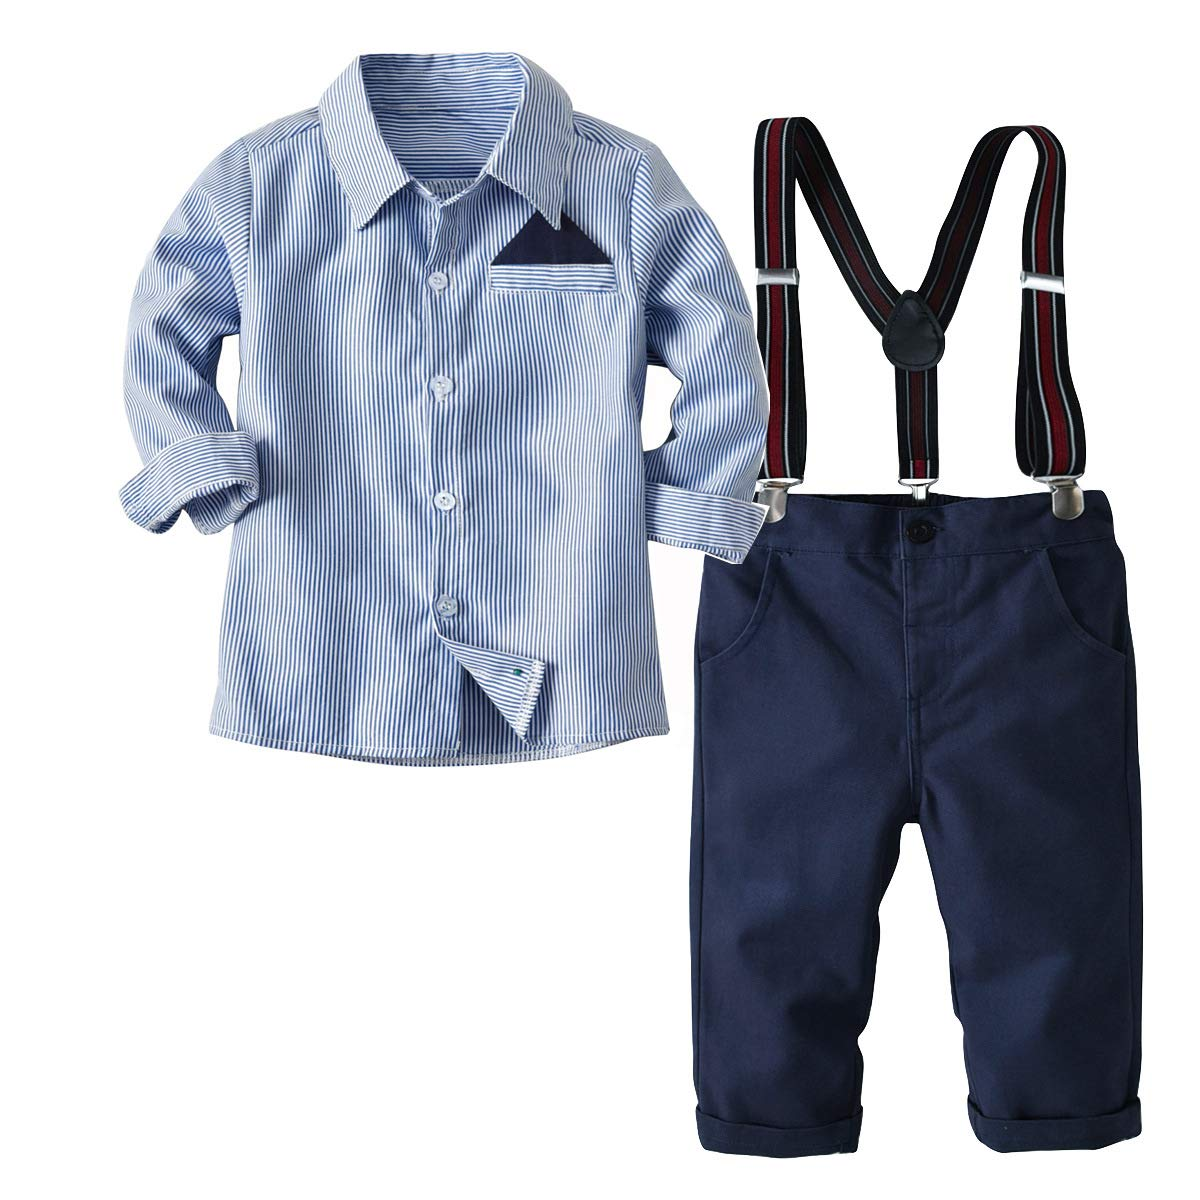 Little Boys Long Sleeve Gentleman Outfit Suits Set,Navy Shirt with Pocket Square+Blue Pant+Suspenders,3T